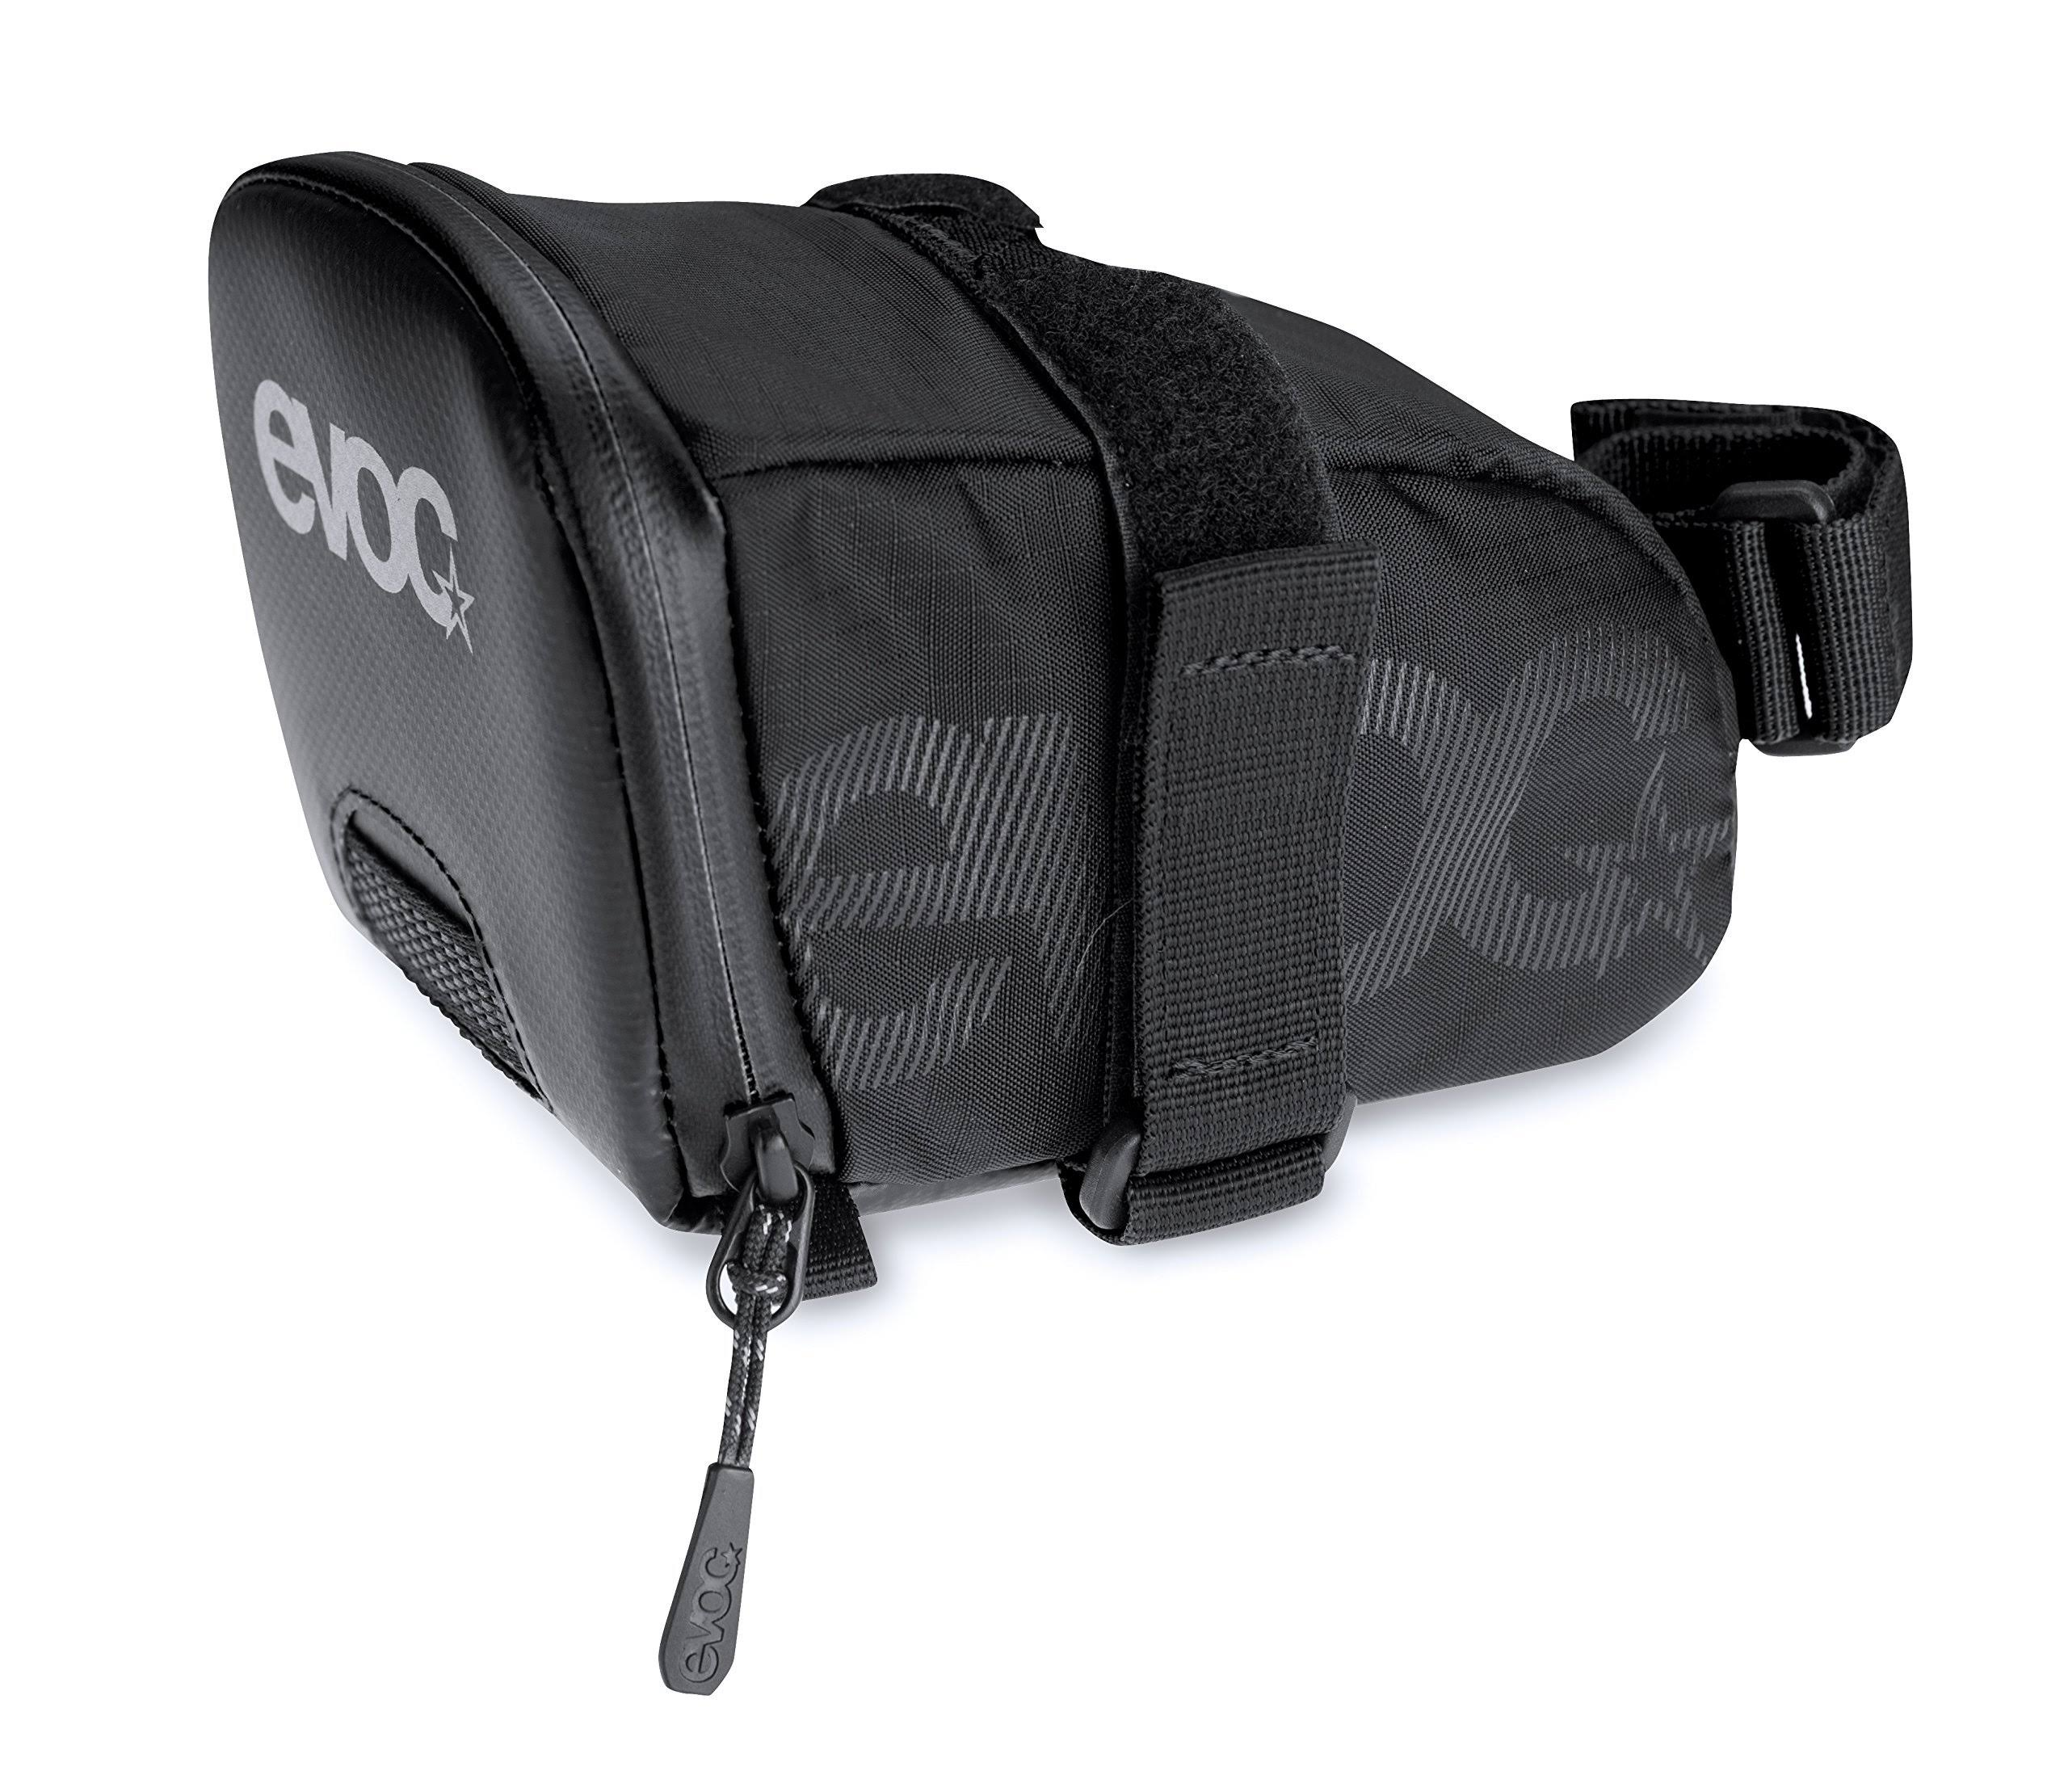 Evoc Tour Bicycle Saddle Seat Bag - Black, 1 Liter